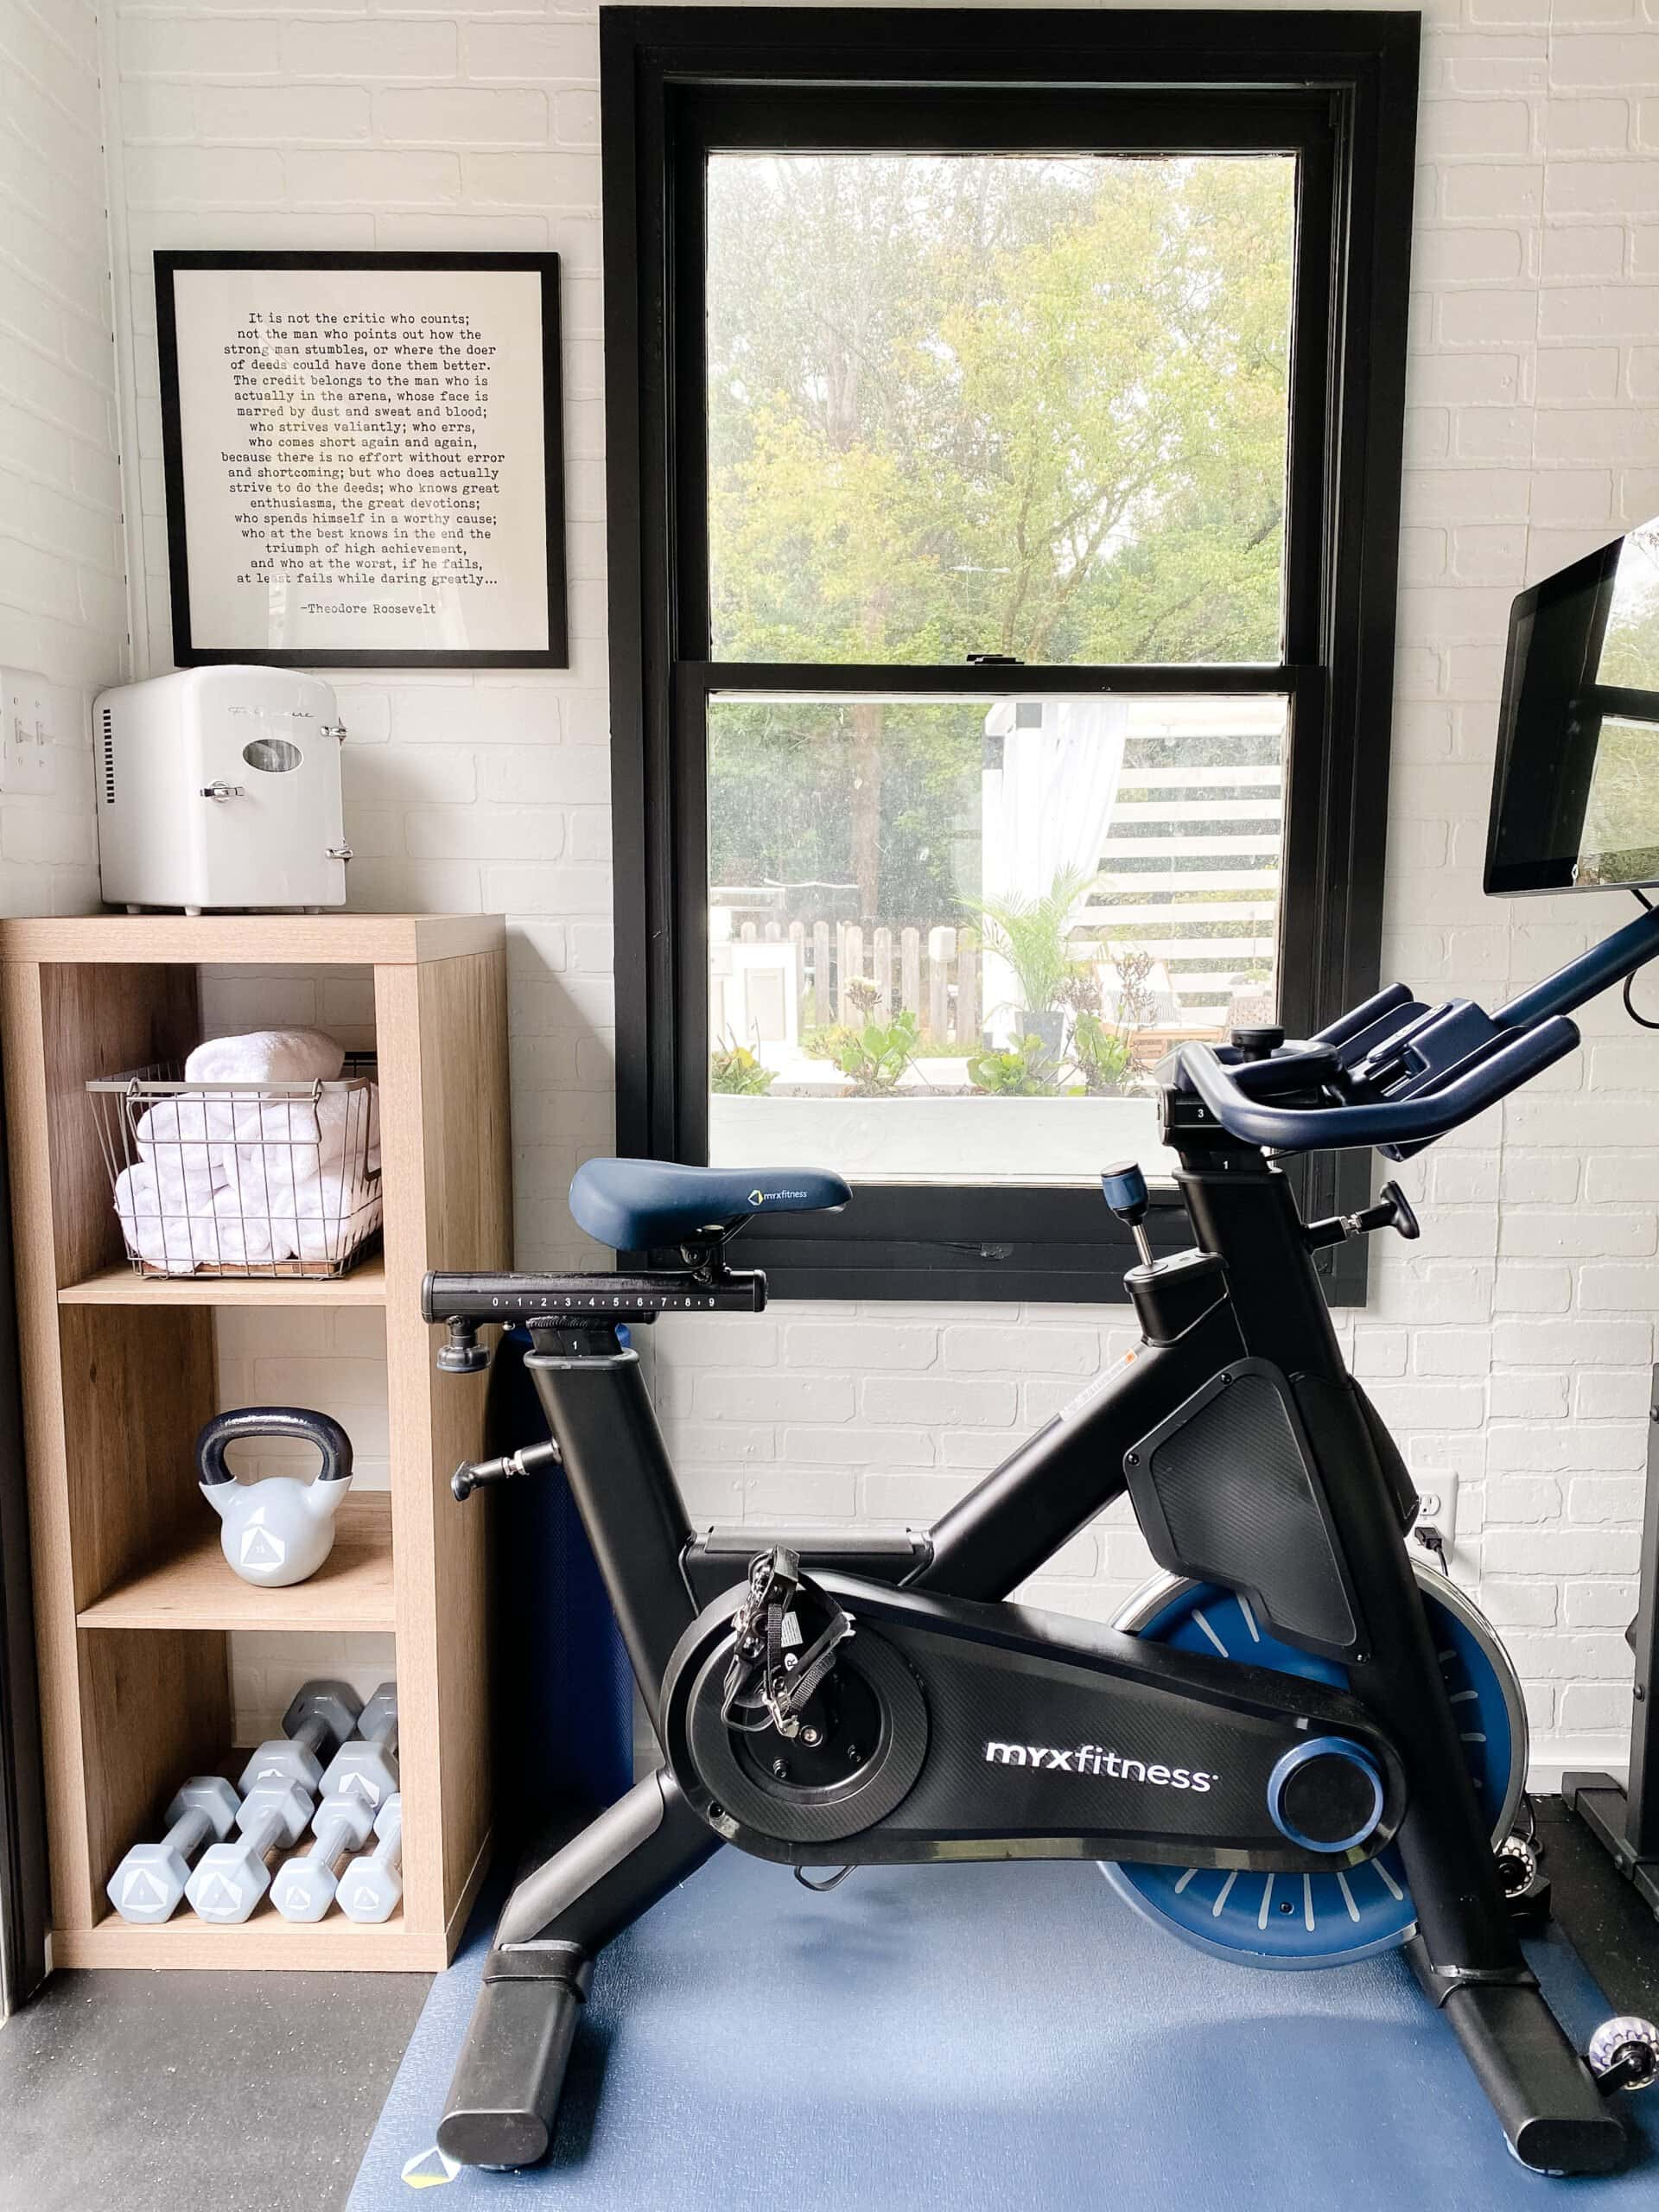 home gym shelves for storing mini fridge, hand weights, and gym towels